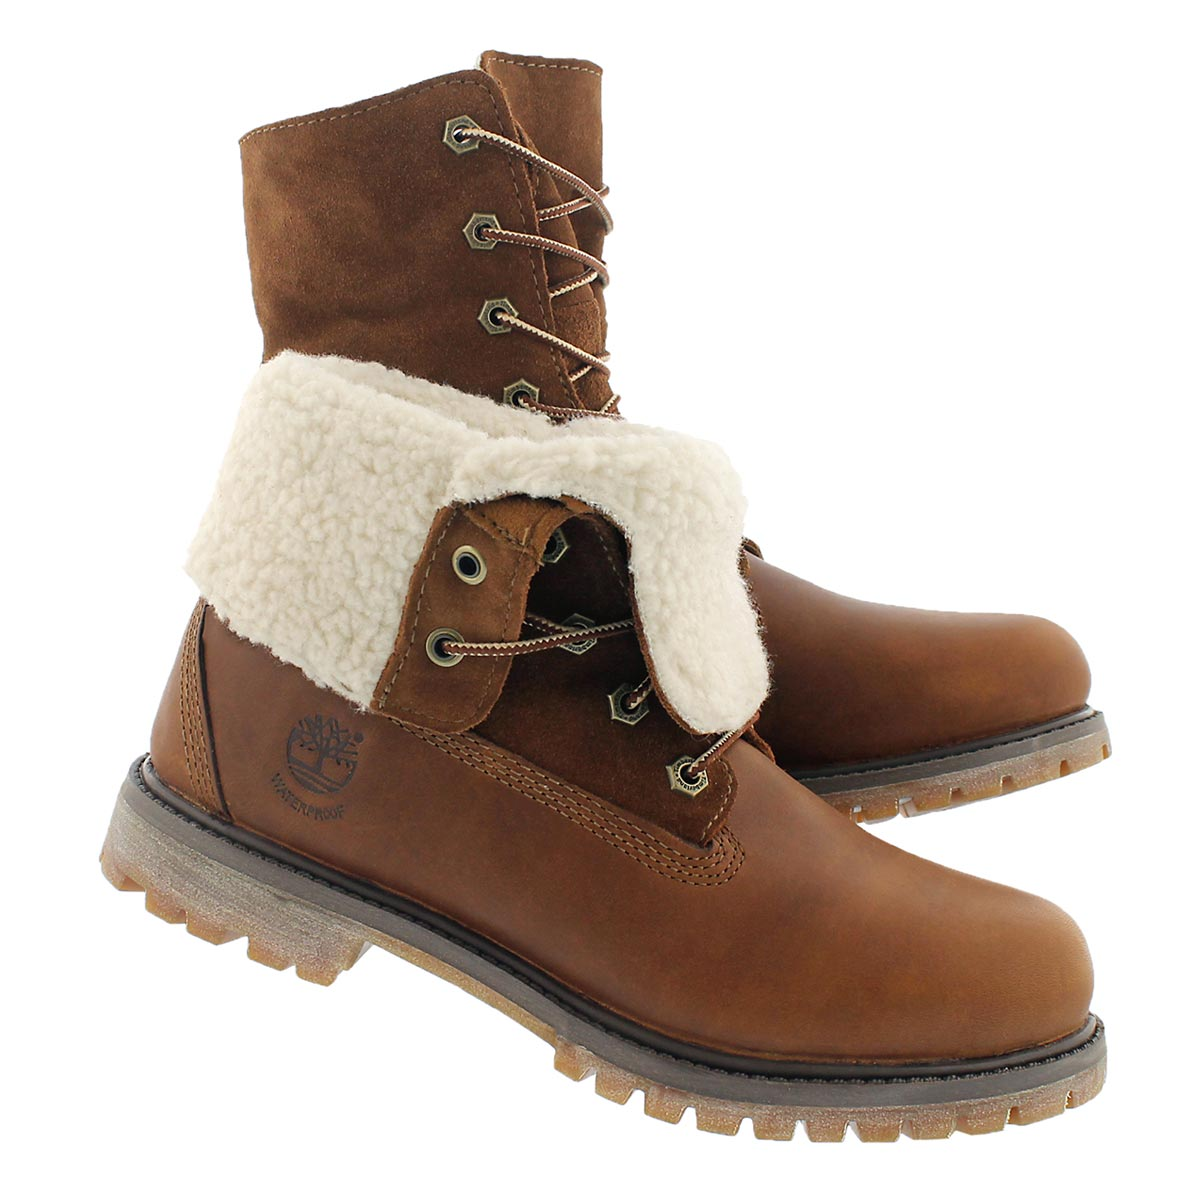 Lds Authentics Teddy tbac fold down boot